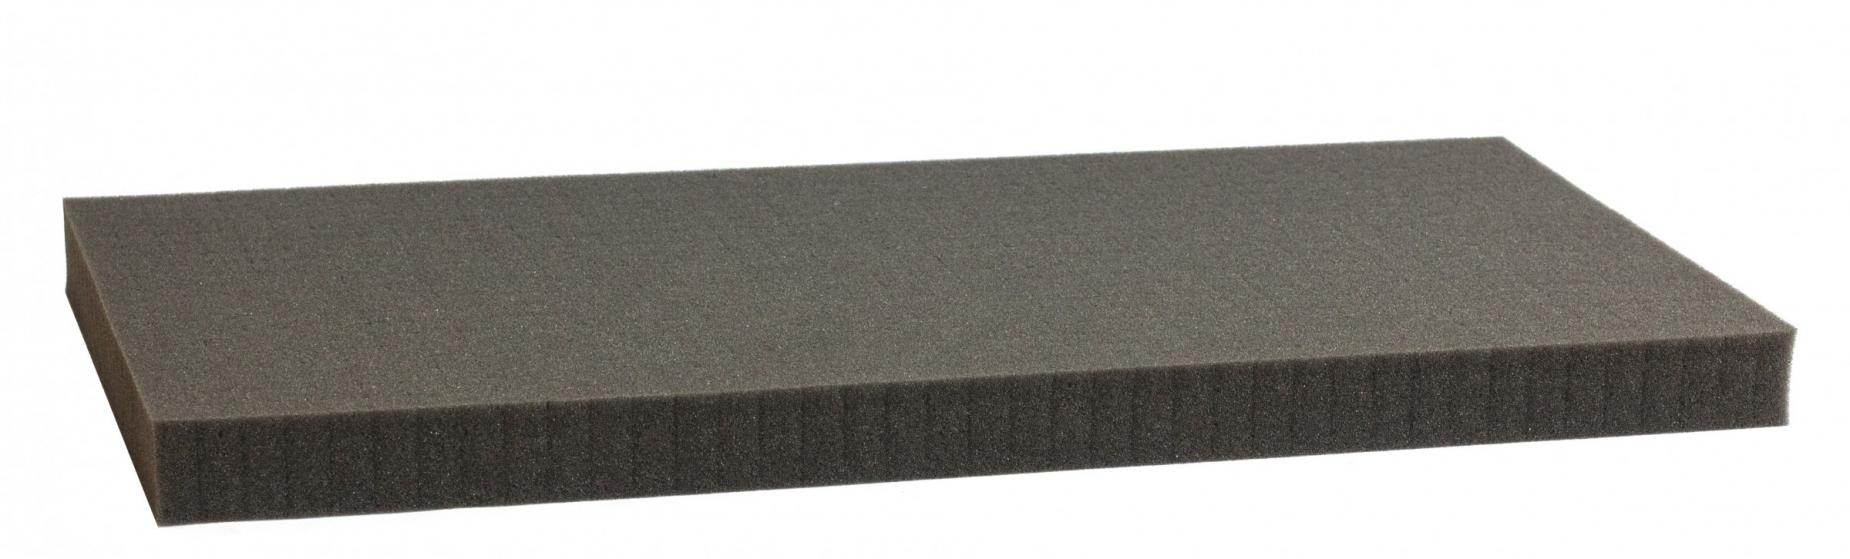 1000 mm x 500 mm x 30 mm - Raster 15 mm - Pick and Pluck / Pre-Cubed foam tray